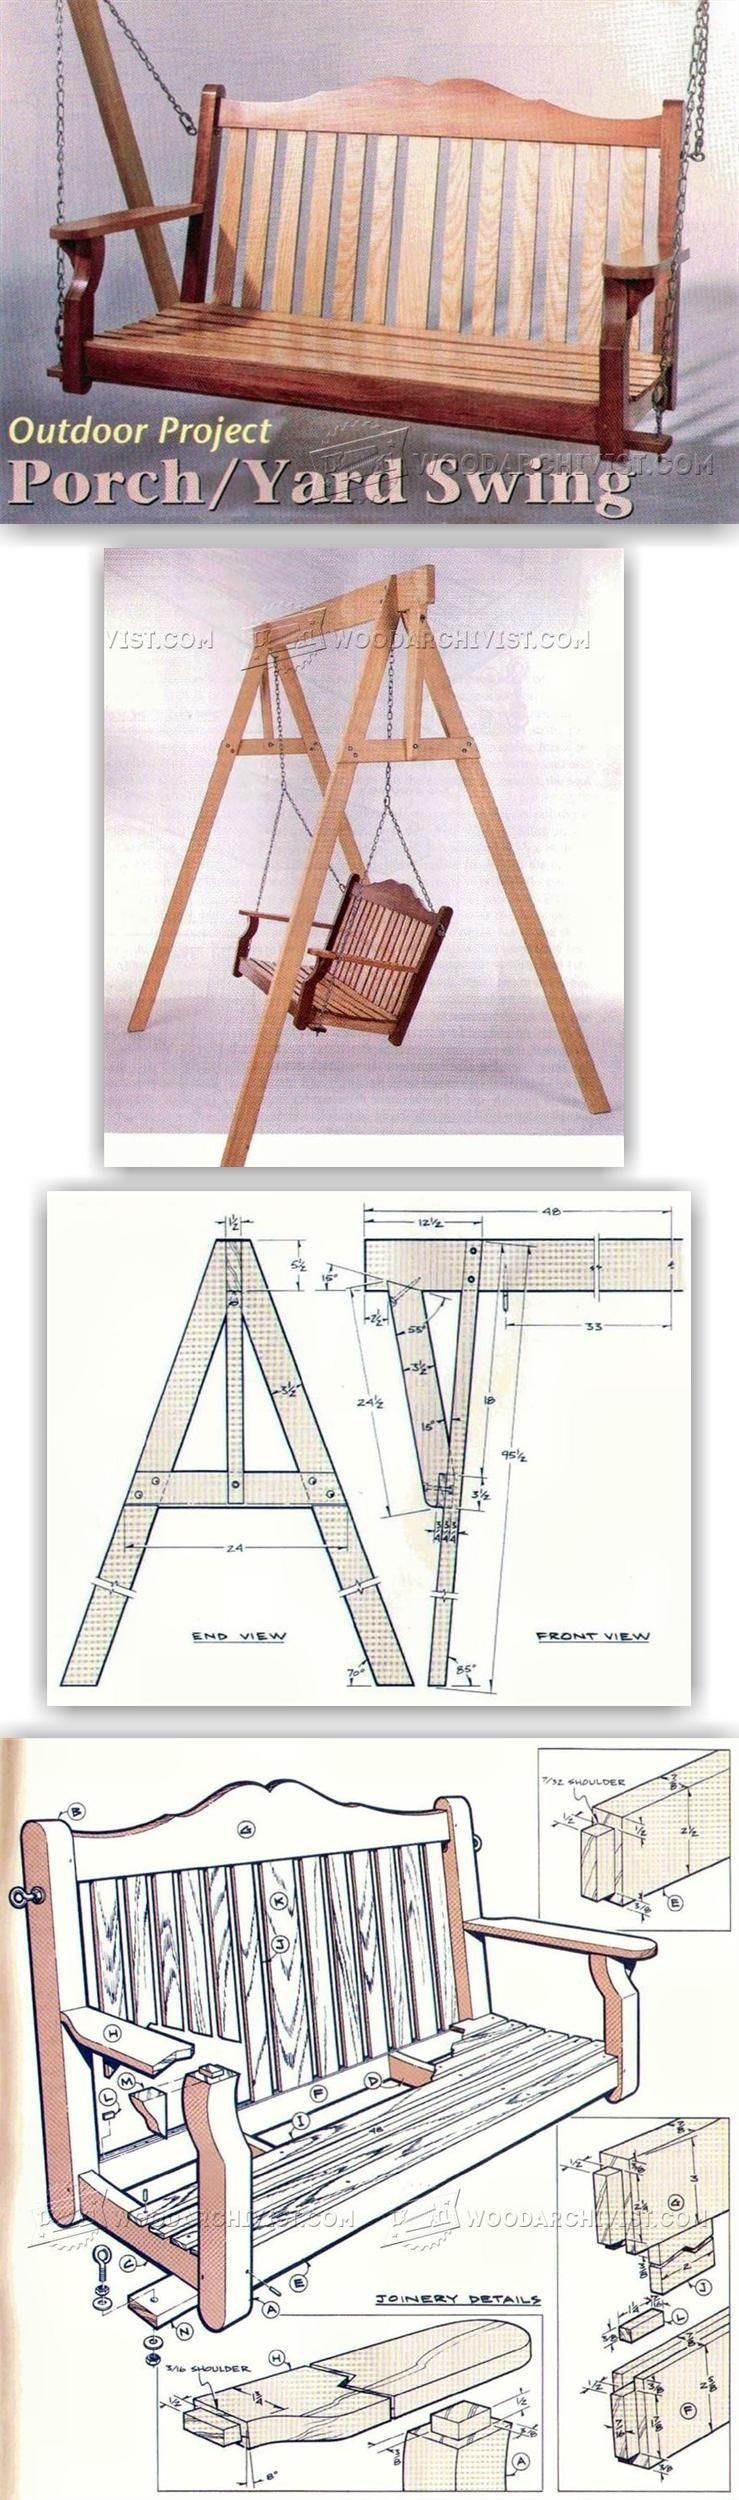 Diy swing set plans ideas for playhouse simple for kids in backyard